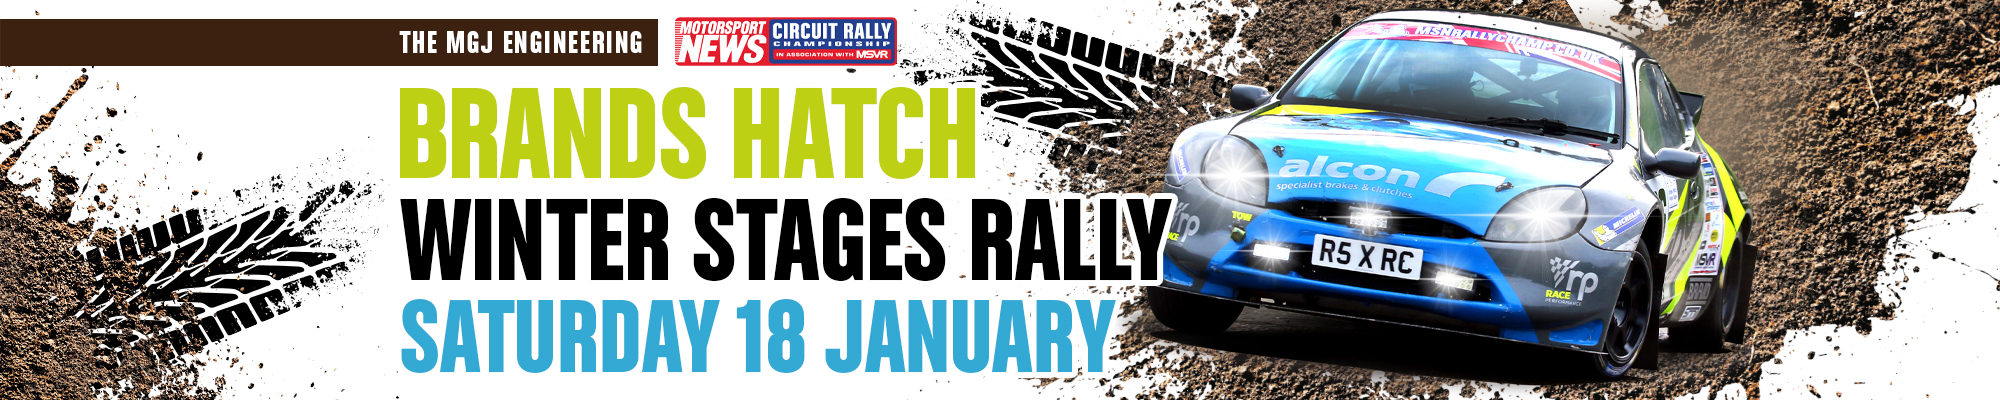 MGJ Engineering Brands Hatch Winter Stages